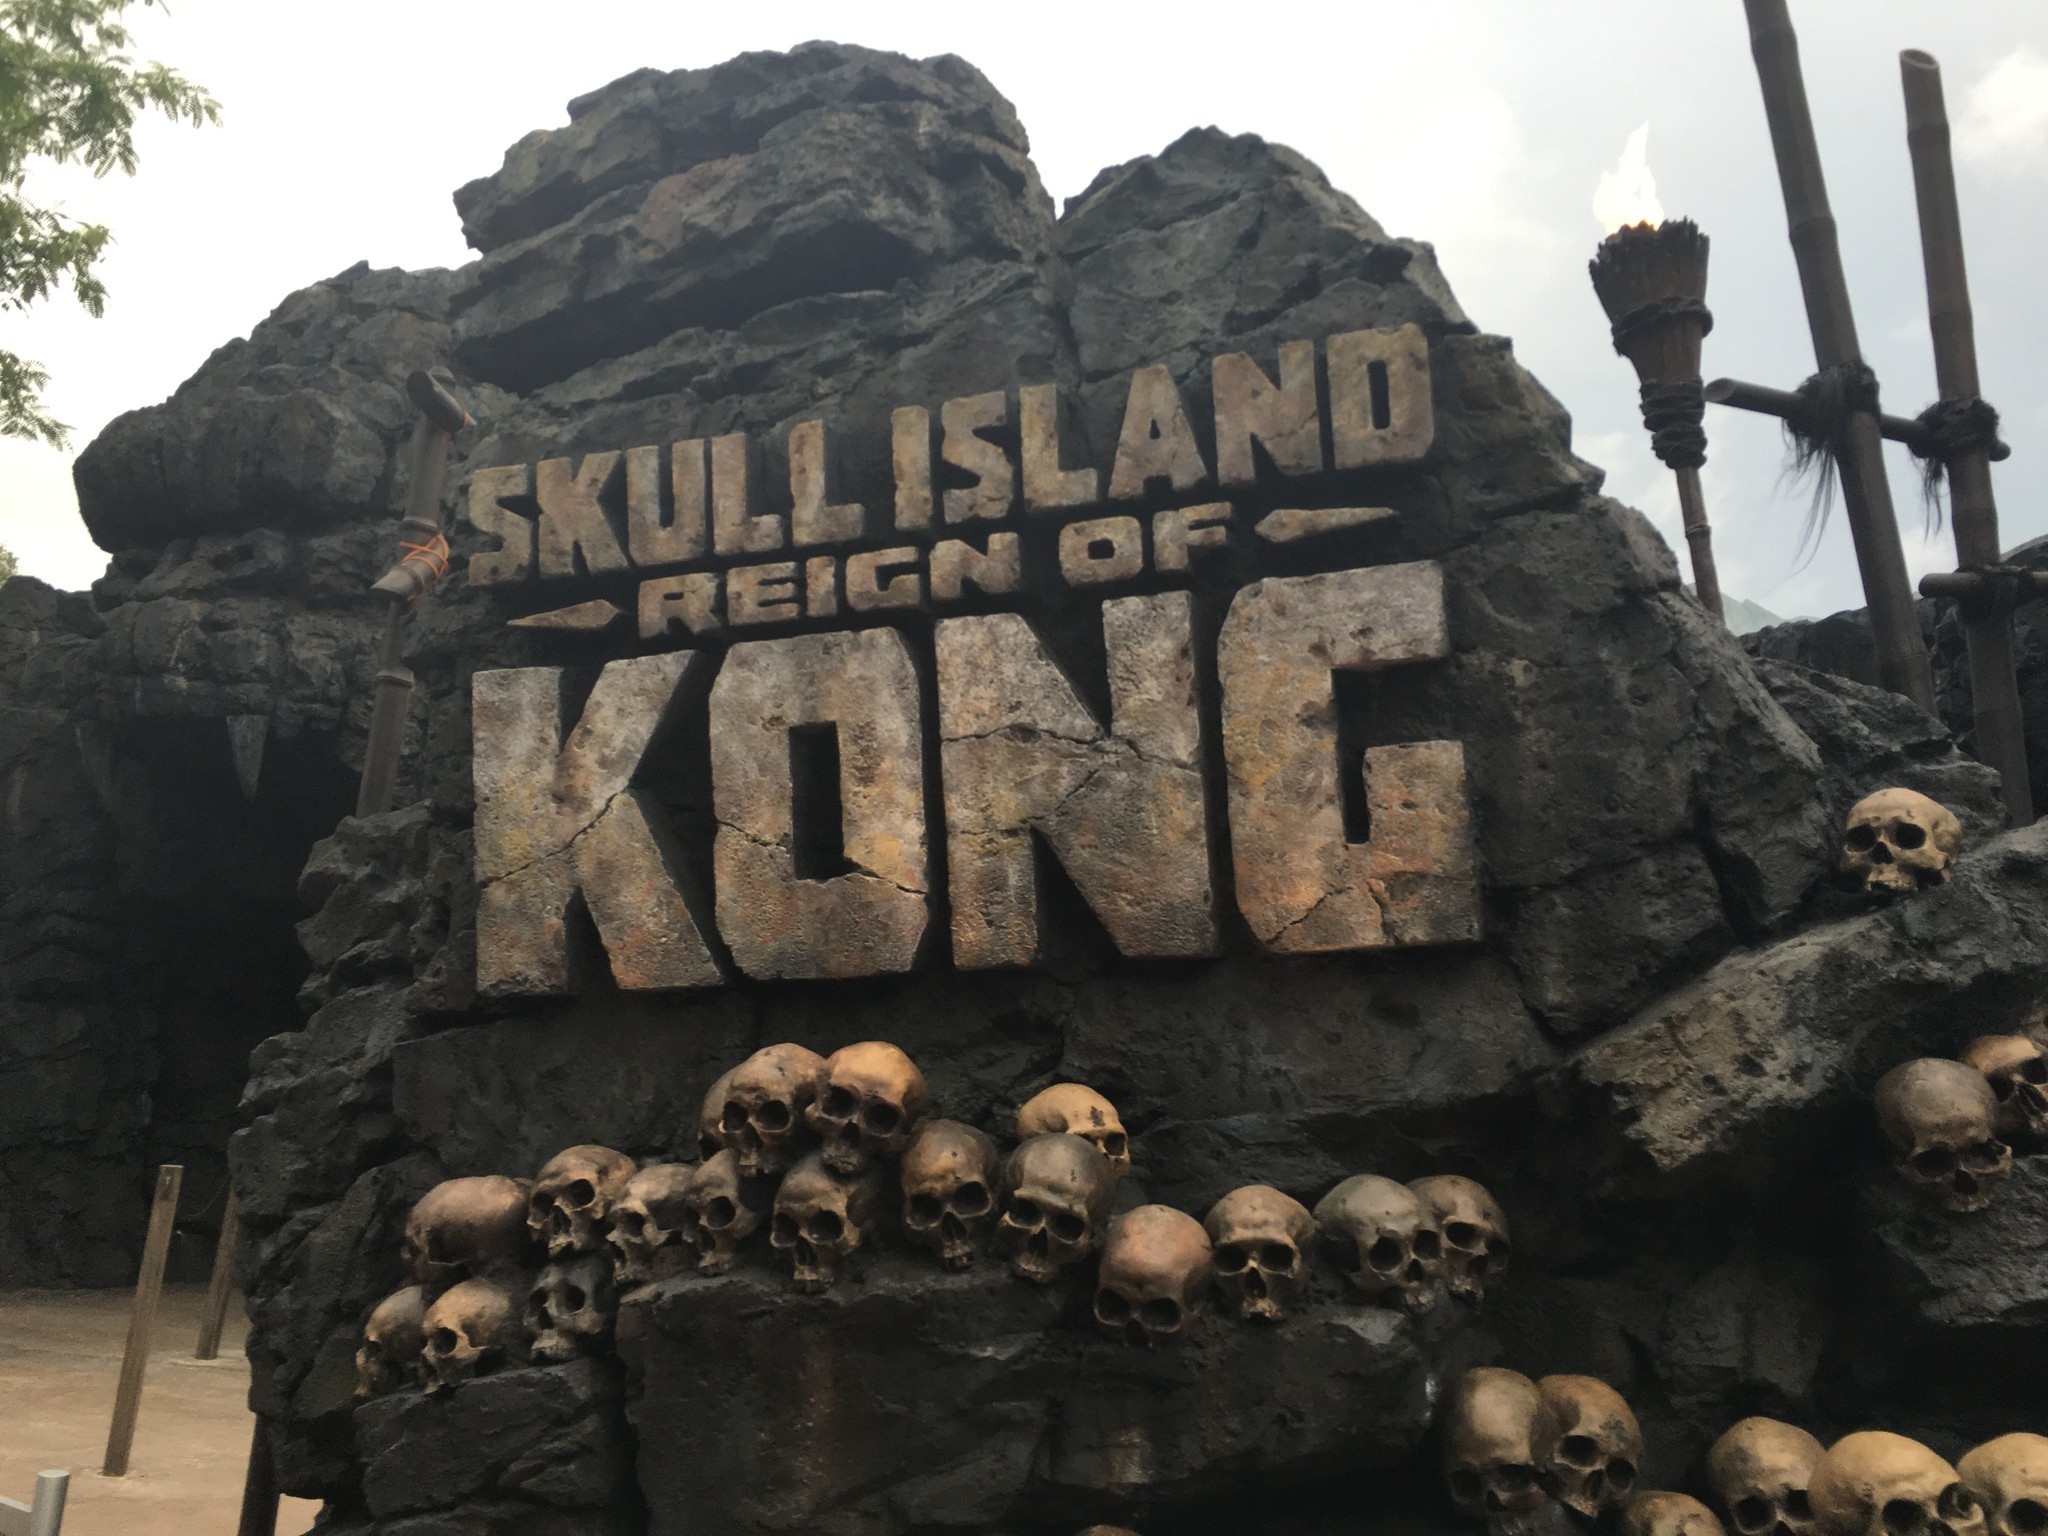 First ride: We visit Universal's Skull Island -- Reign of Kong - Orlando Sentinel